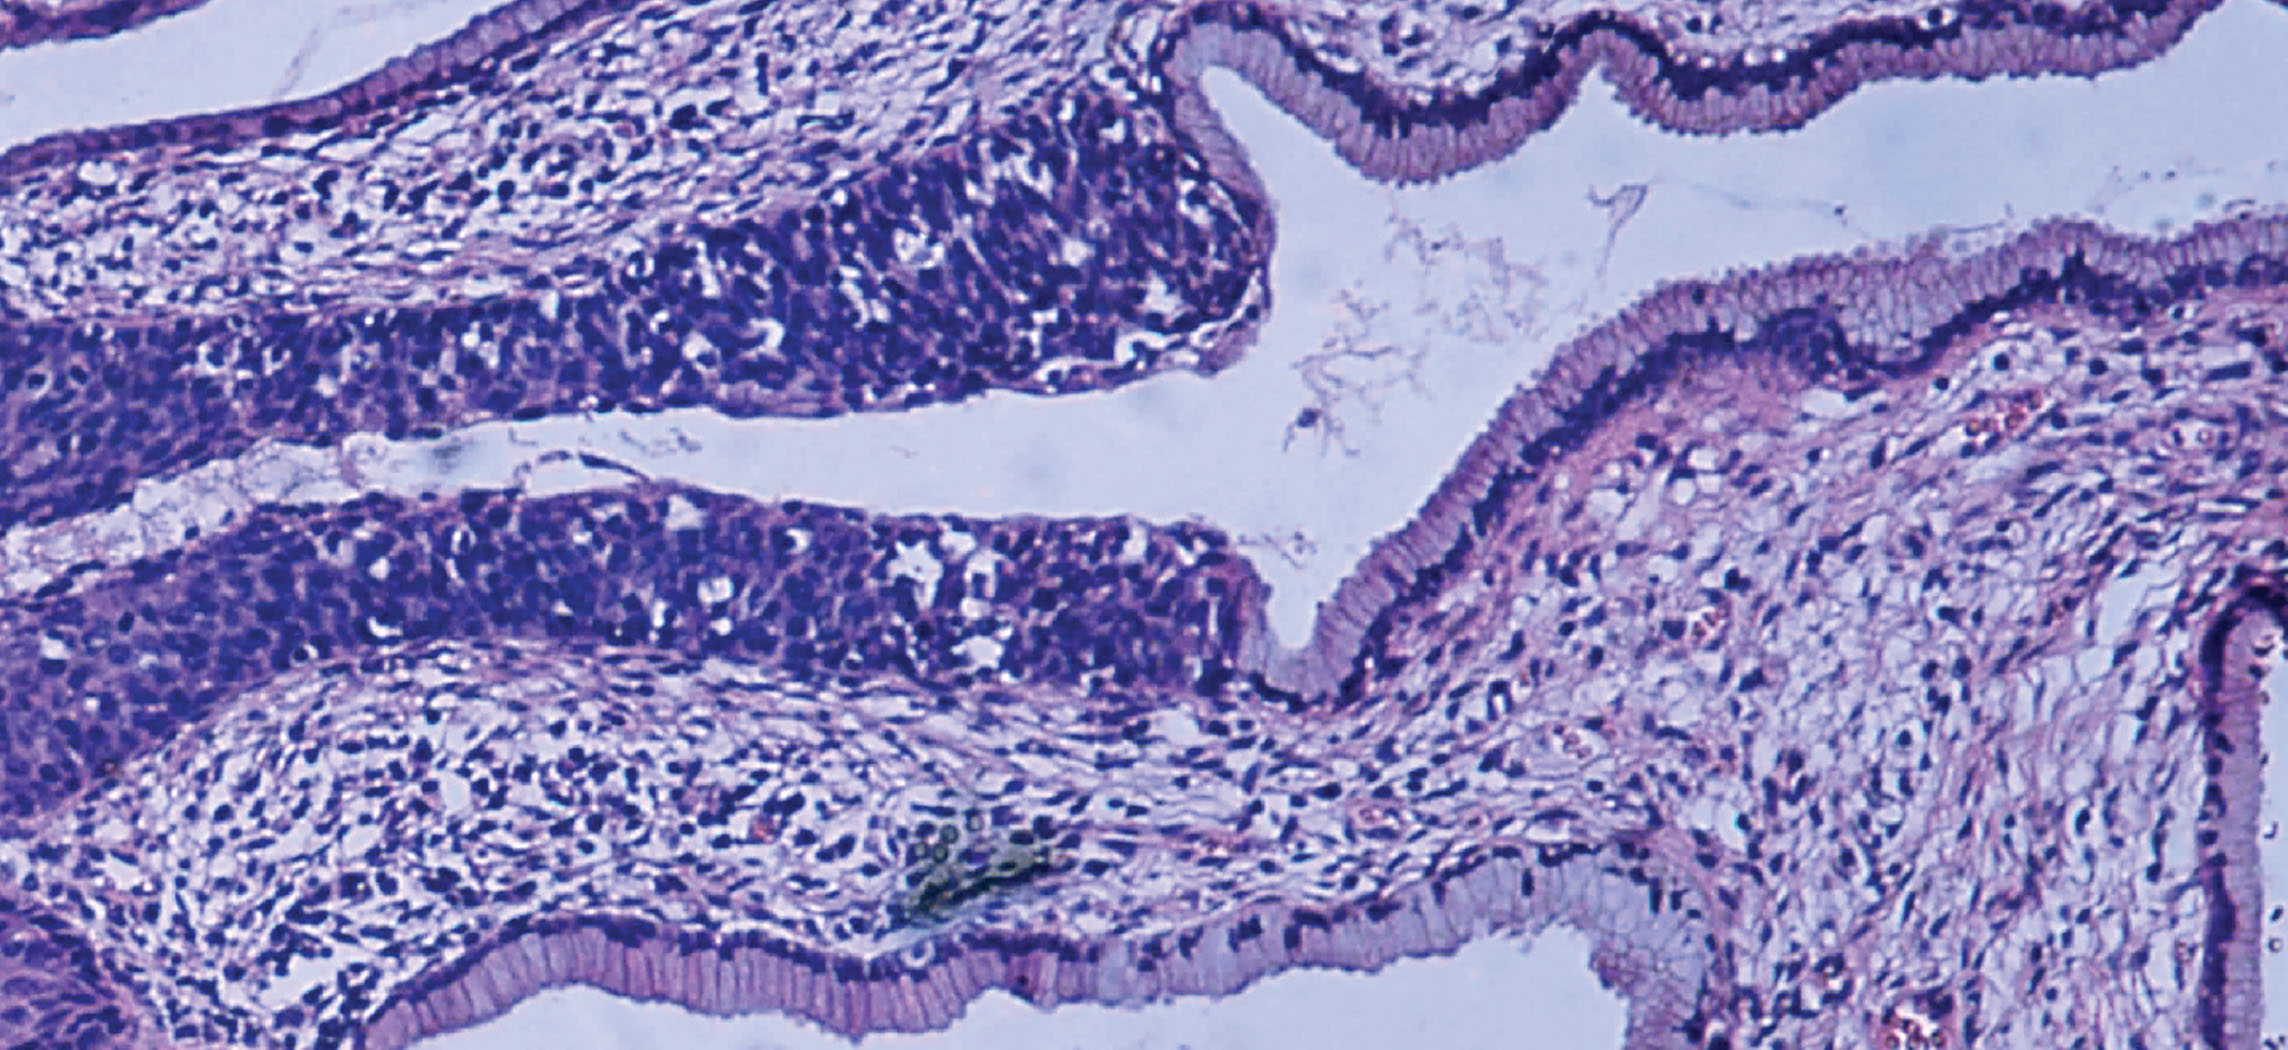 This micrograph shows tissue surrounding several empty spaces. The epithelial tissue occurs at the border between the rest of the tissue and the empty spaces. The normal epithelium is composed of rectangular-shaped cells neatly organized side by side. Dark purple nuclei are clear at the bottom of the epithelial cells, where they attach to the rest of the tissue. The abnormal epithelium appears as a tangled area of purple nuclei, much thicker than the normal epithelium although no distinct cells are discernible.